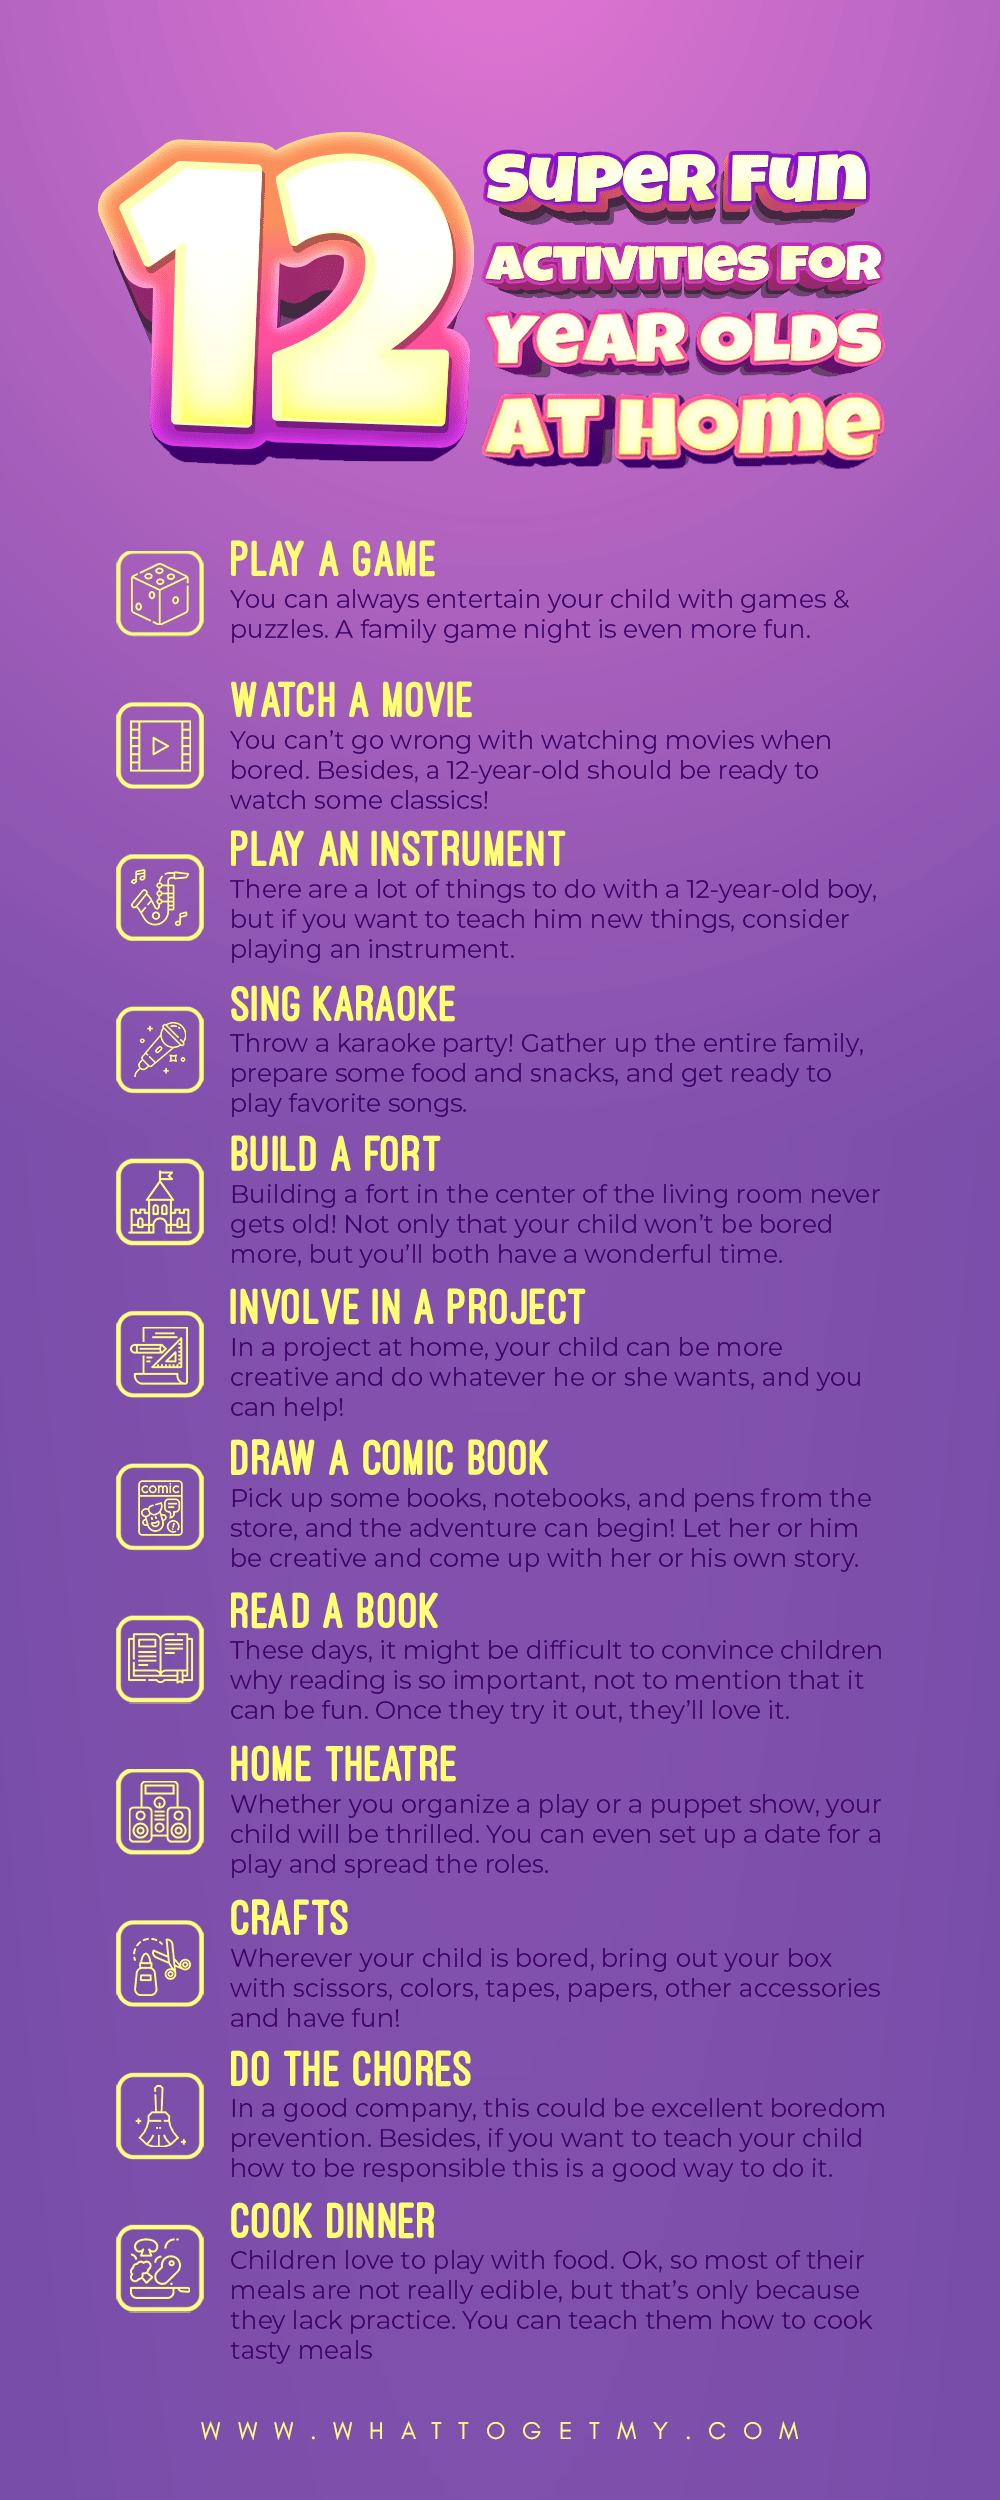 Infographic 12 Super Fun Activities for 12 Year Olds At Home